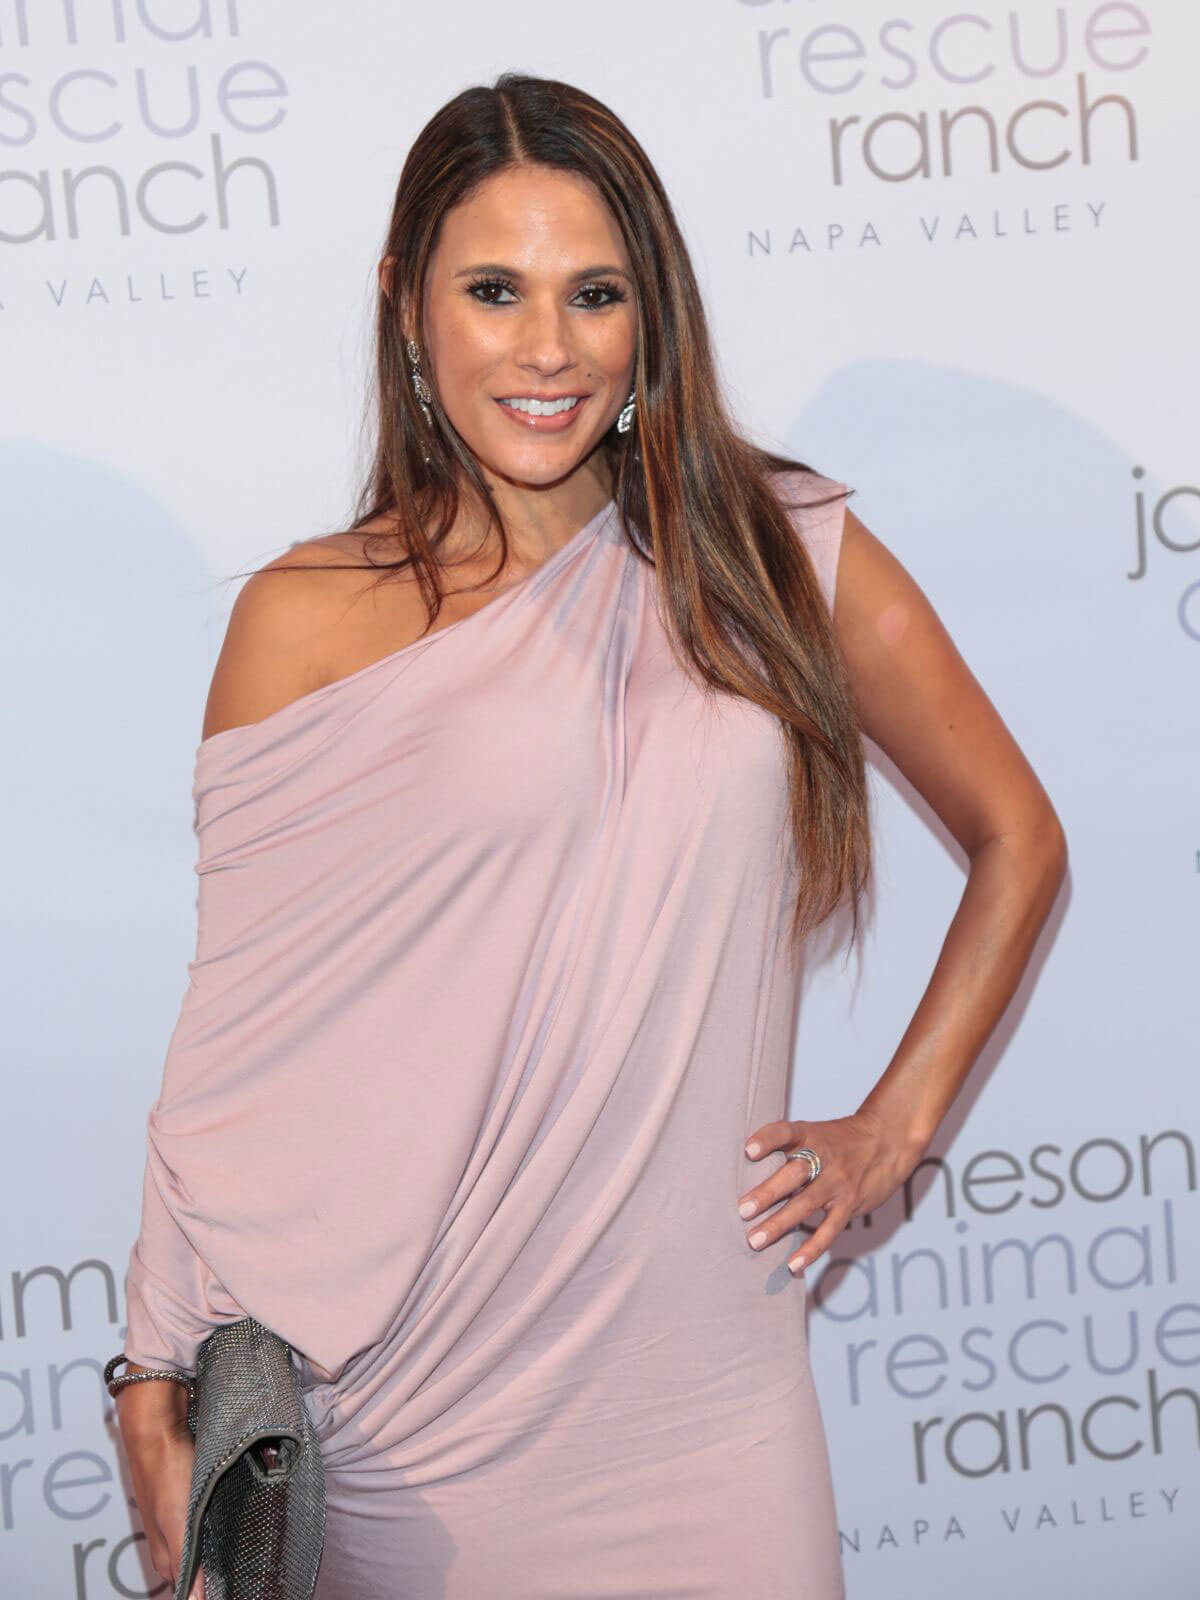 Bonnie-Jill Laflin Stills at Jameson Animal Rescue Ranch Presents Napa in Need in Beverly Hills